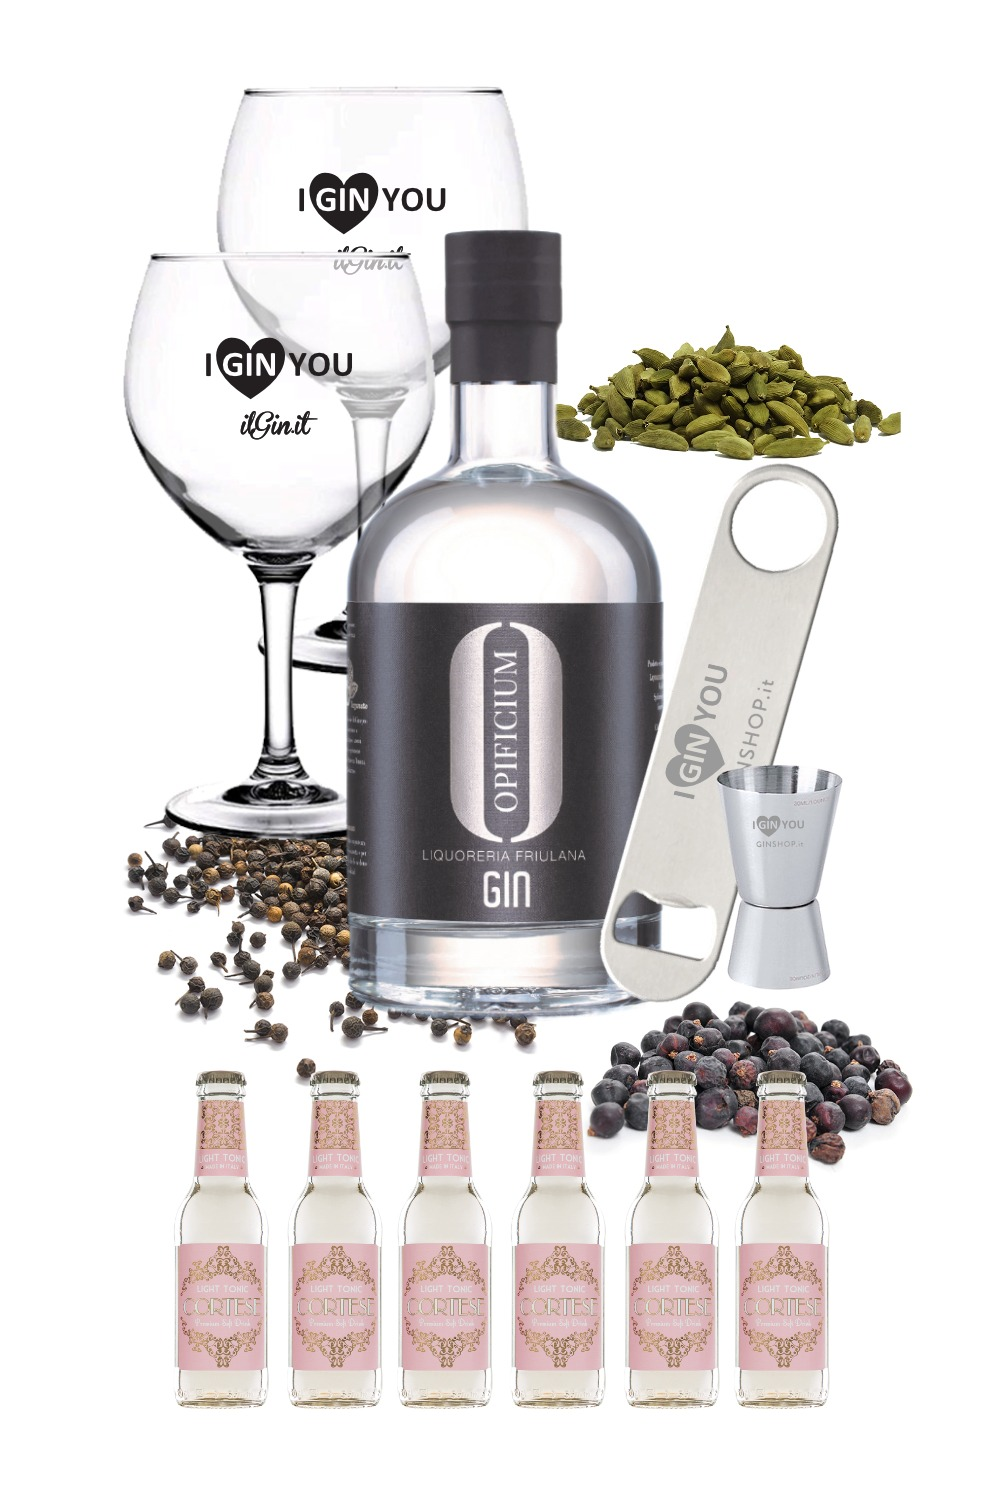 Gin Opificium – Mission Ginpossible